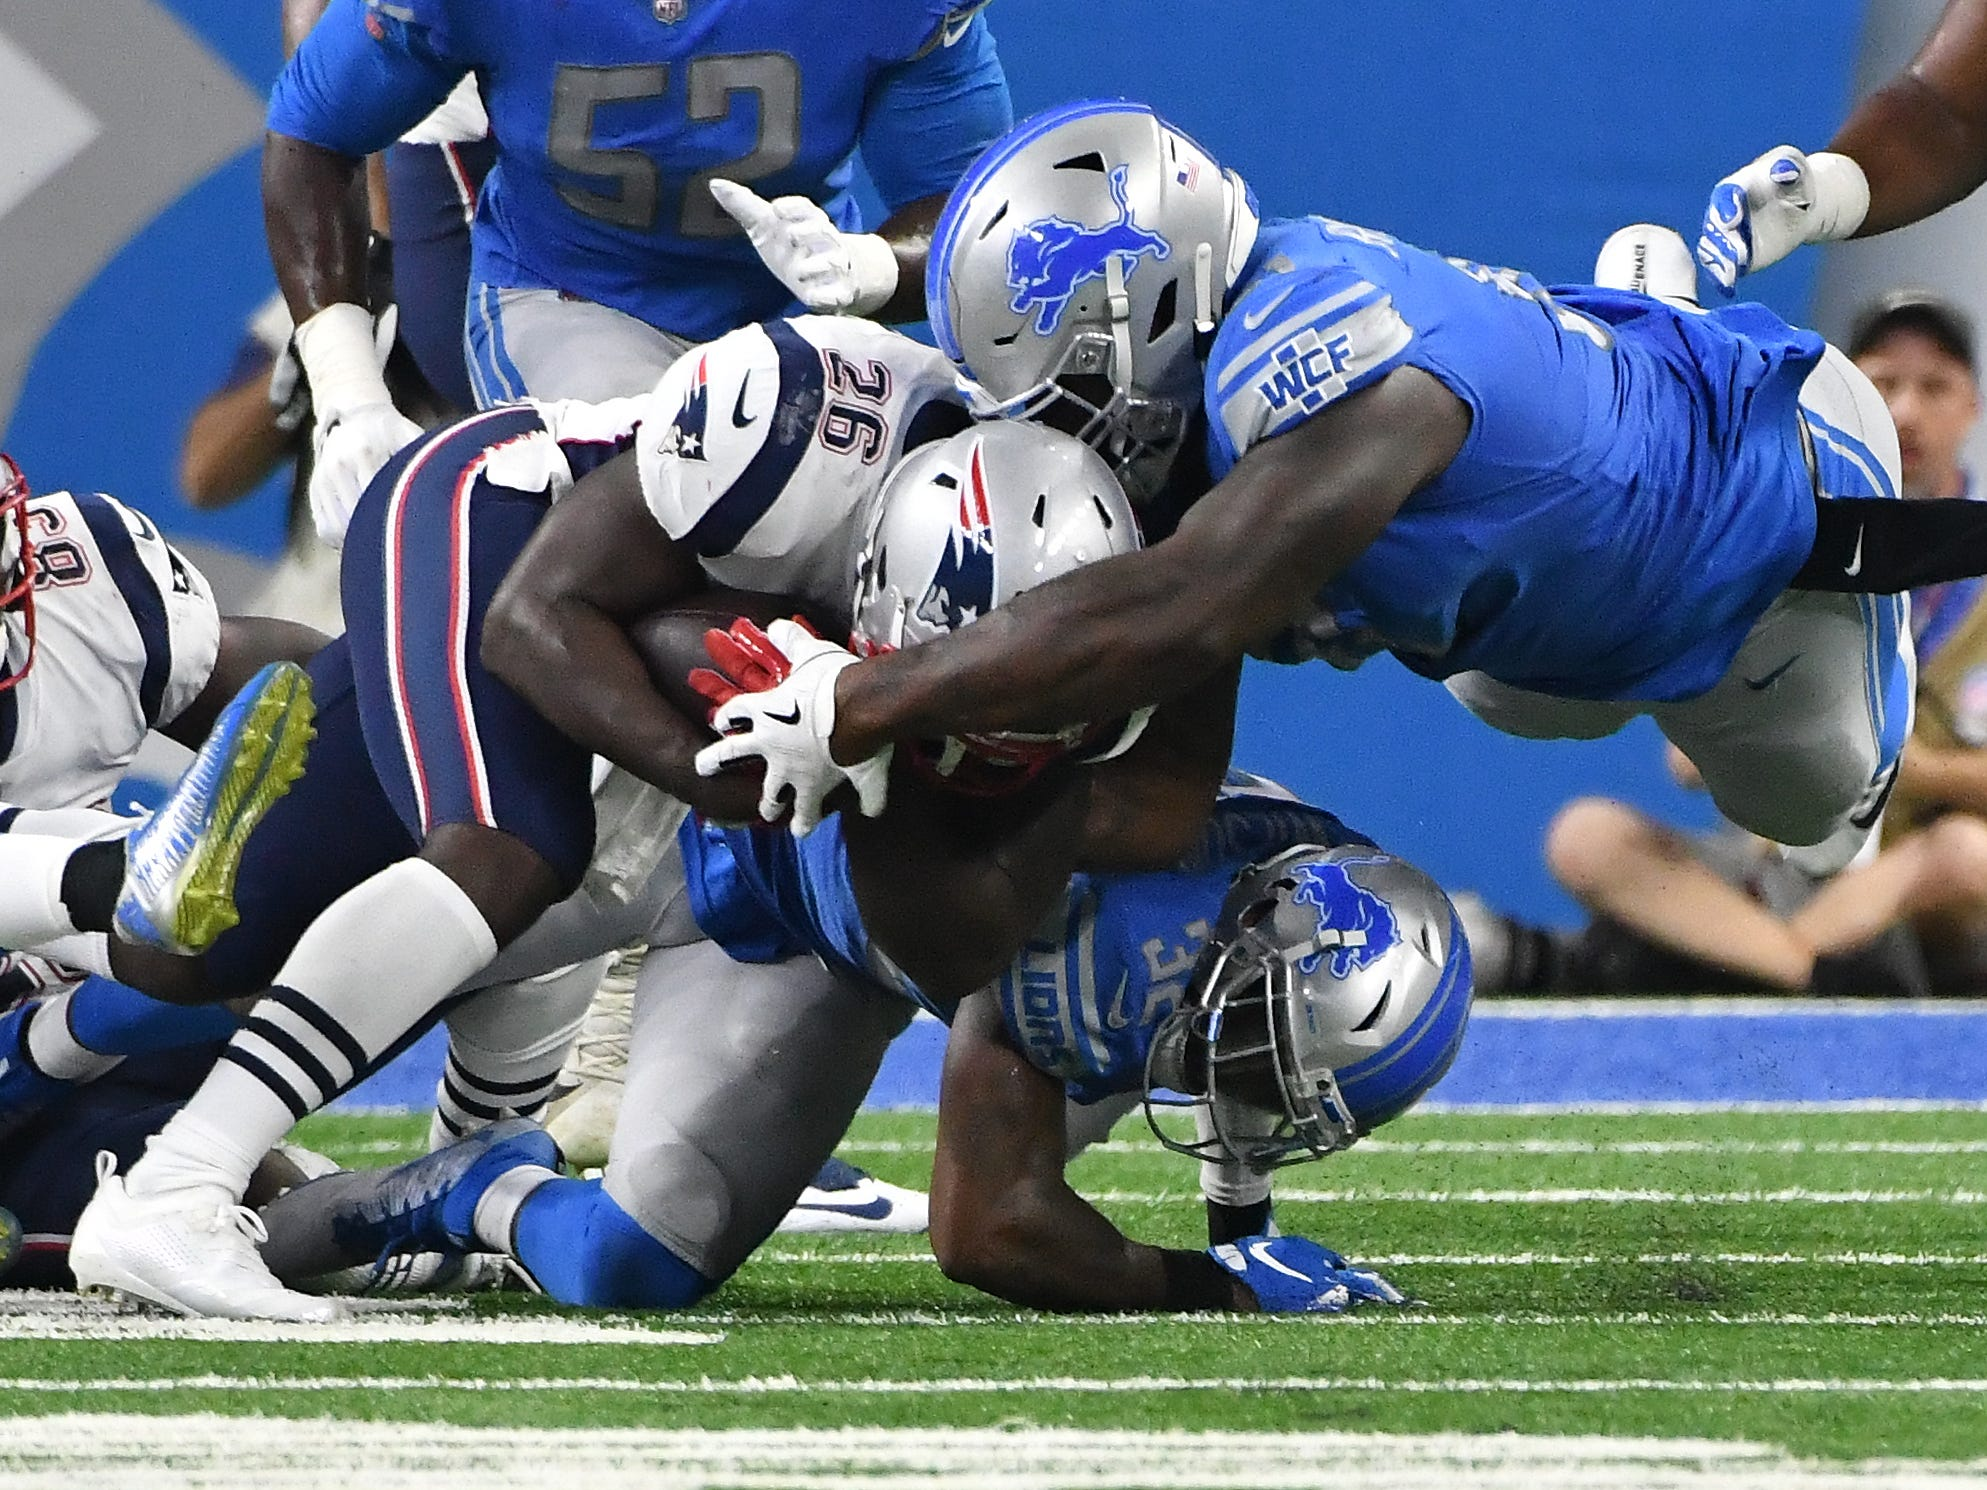 Lions' Tavon Wilson and A'Shawn Robinson stop Patriots' Sony Michel from making a first down on 3rd and one in the second quarter.